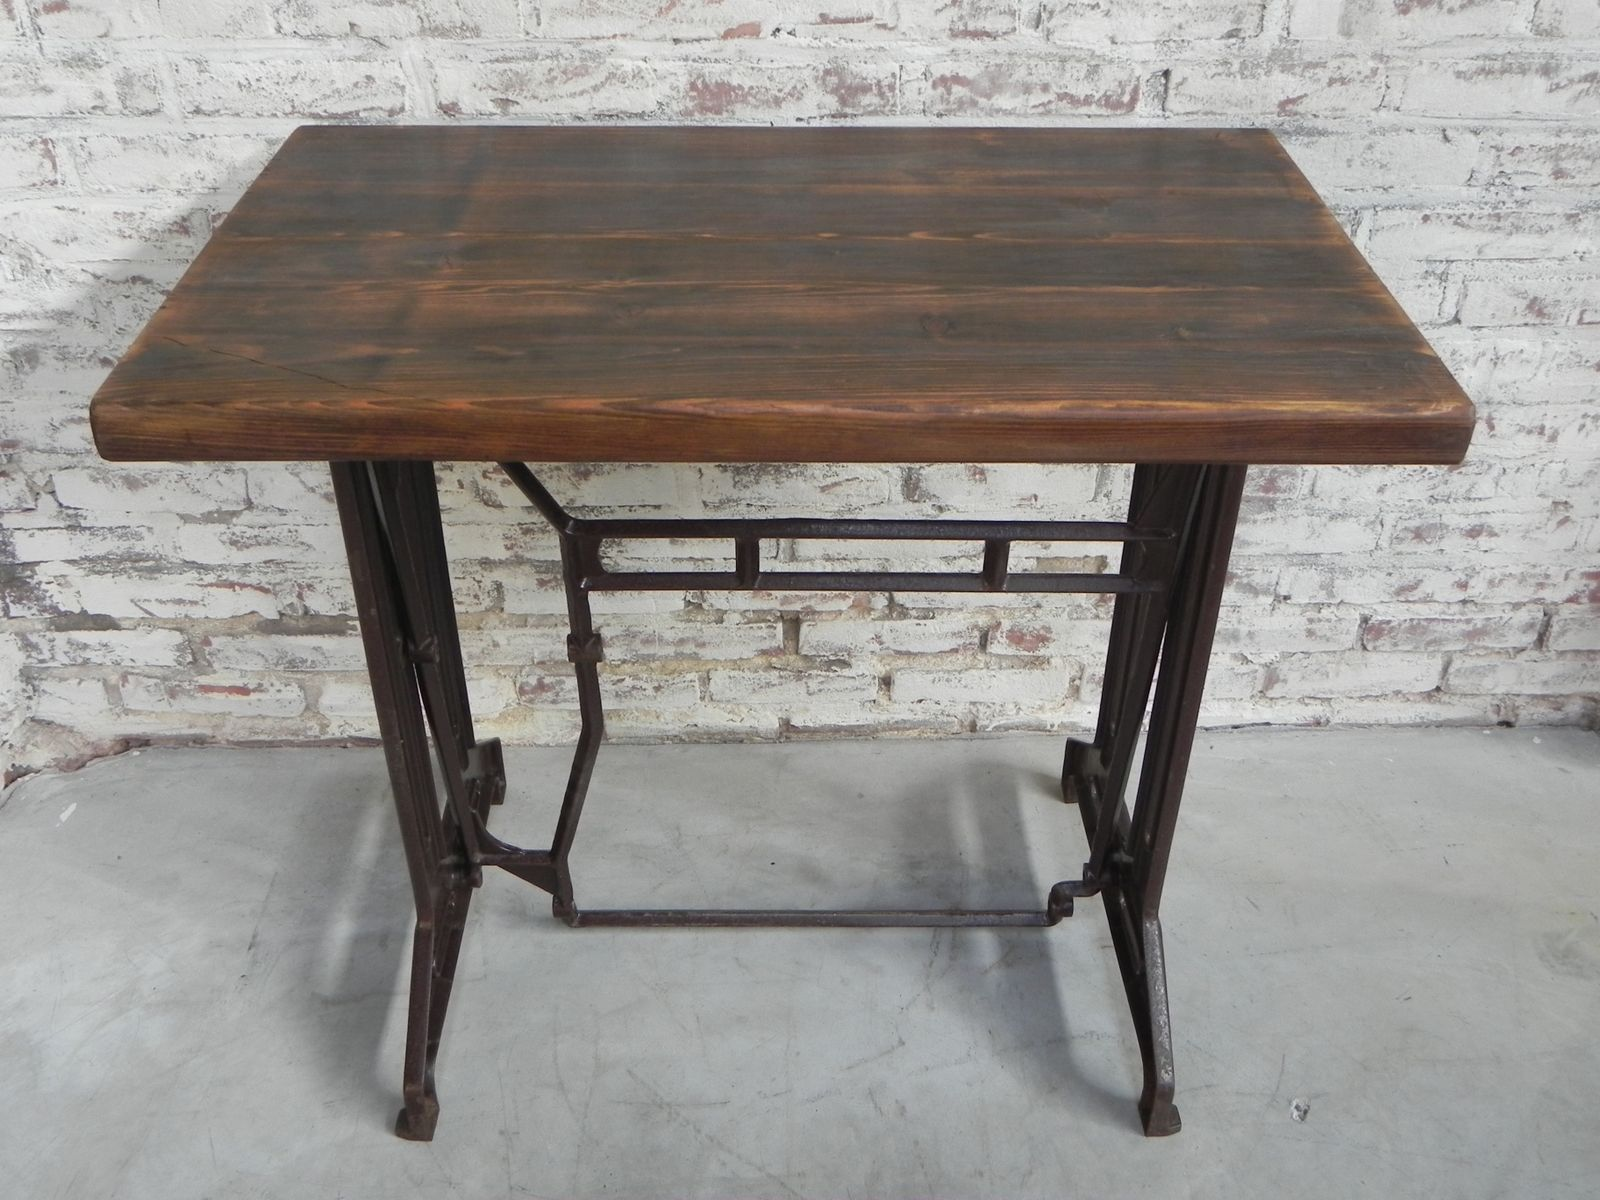 Art Deco Bistro Table With Wooden Top U0026 Cast Iron Base, 1930s